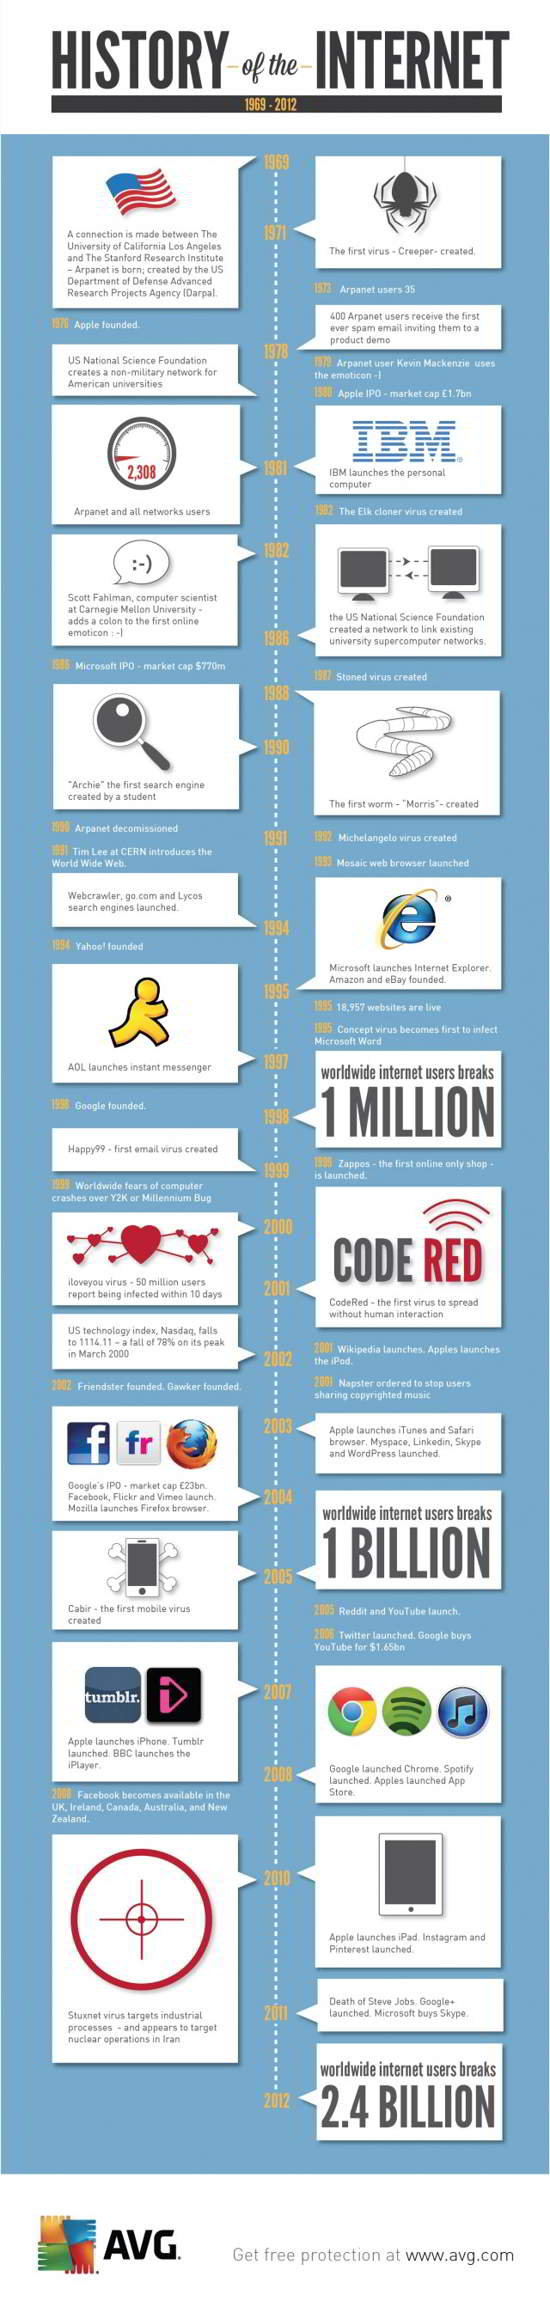 05 History of the Internet! 1969-2012 [infographic]